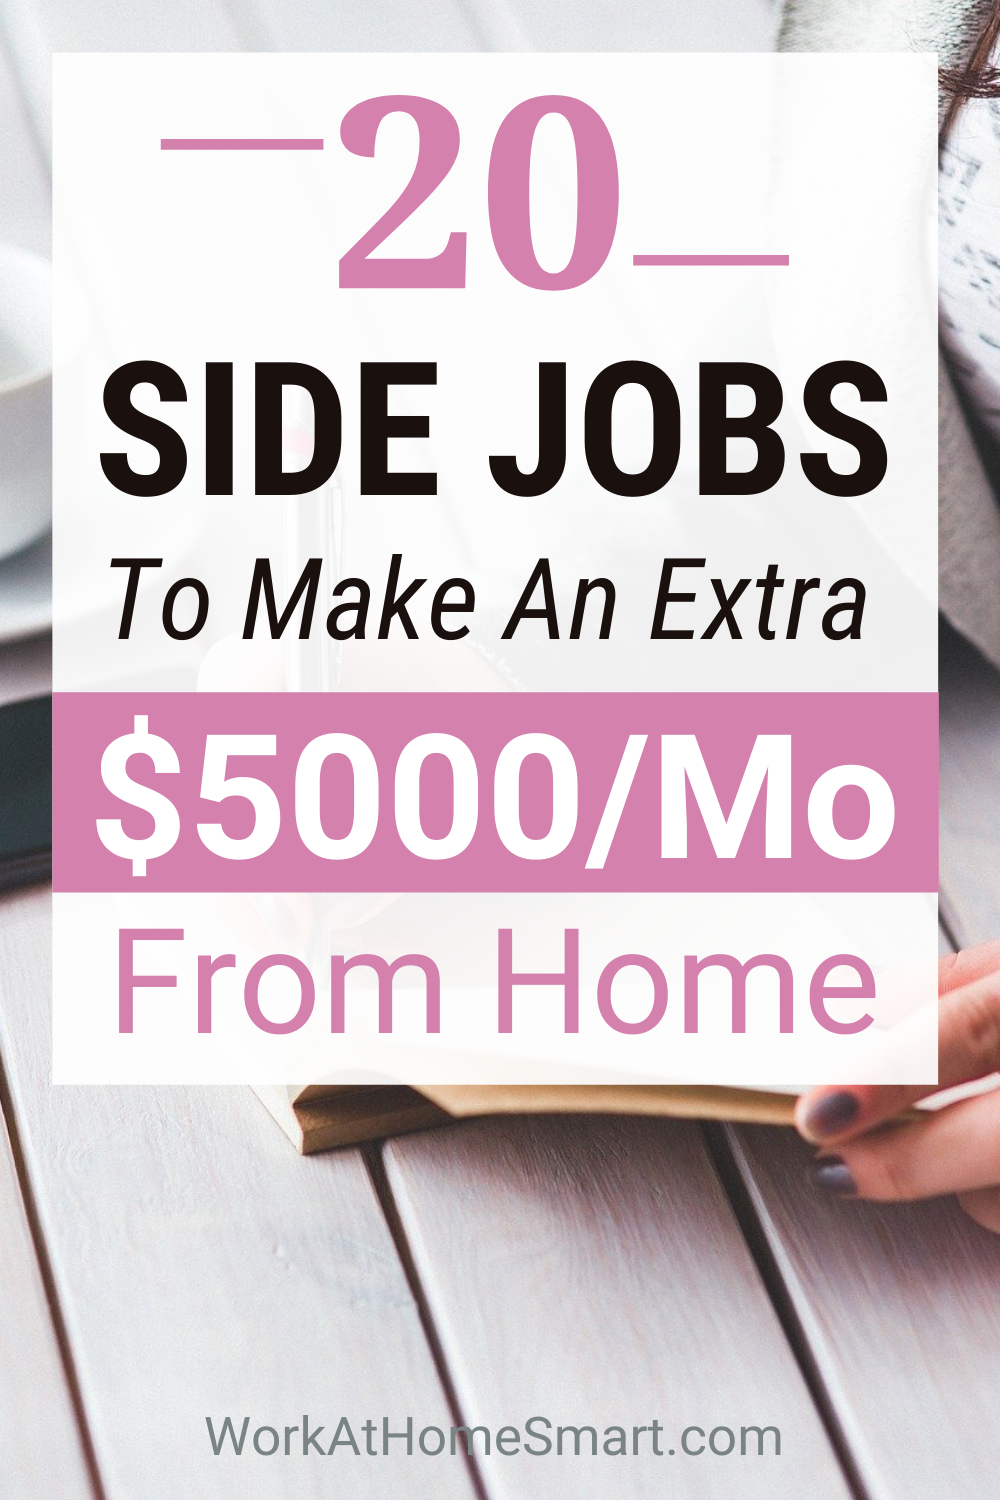 20 Online Side Jobs To Make Extra Money From Home in 2020 | Online side jobs. Side jobs. Online jobs from home